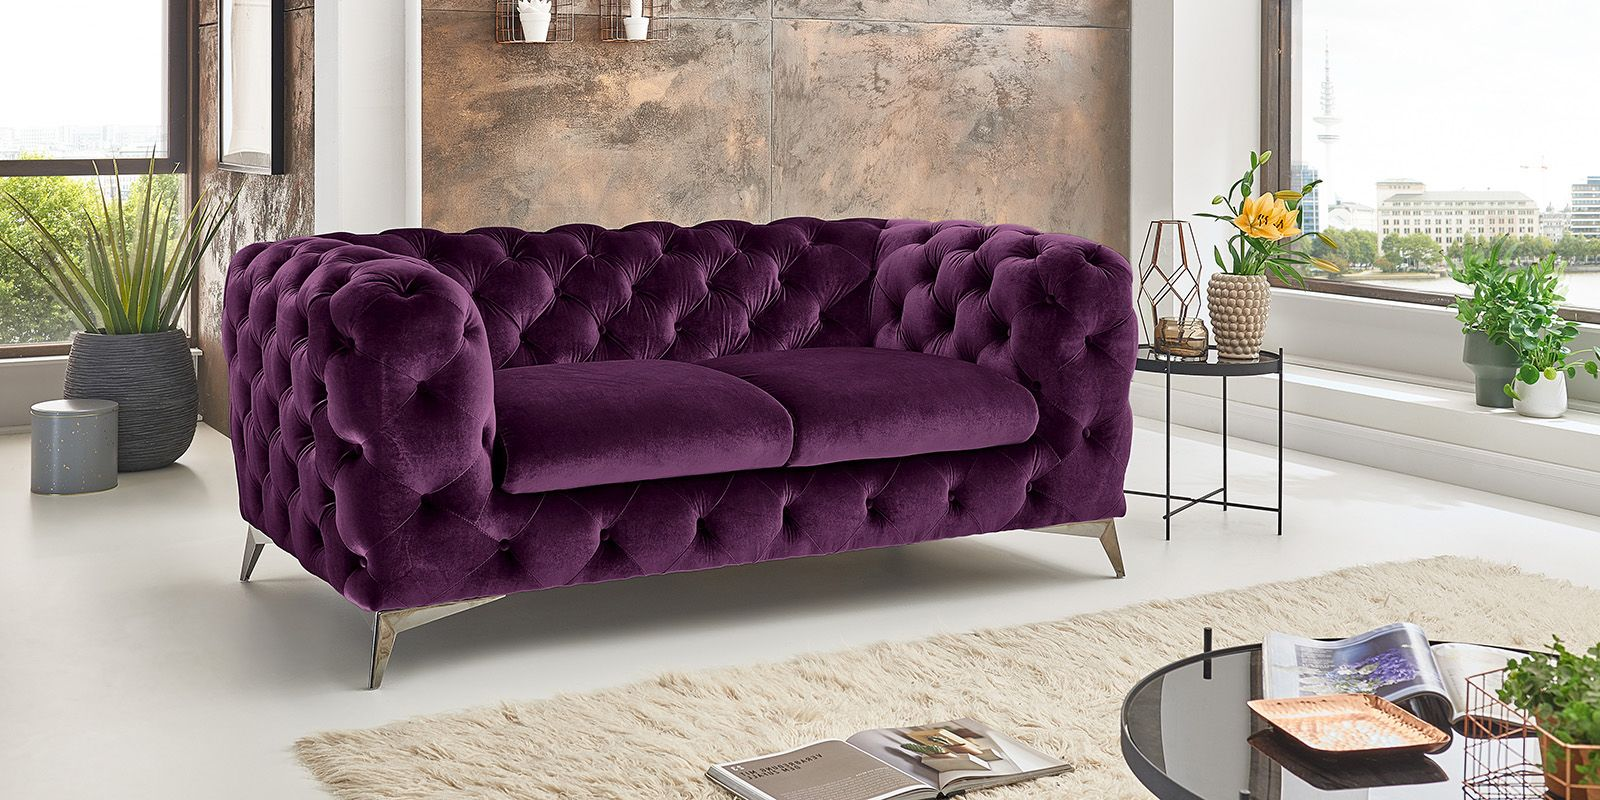 2 Sitzer Chesterfield Sofa Big Emma Samt Chesterfield Sofa Sofa